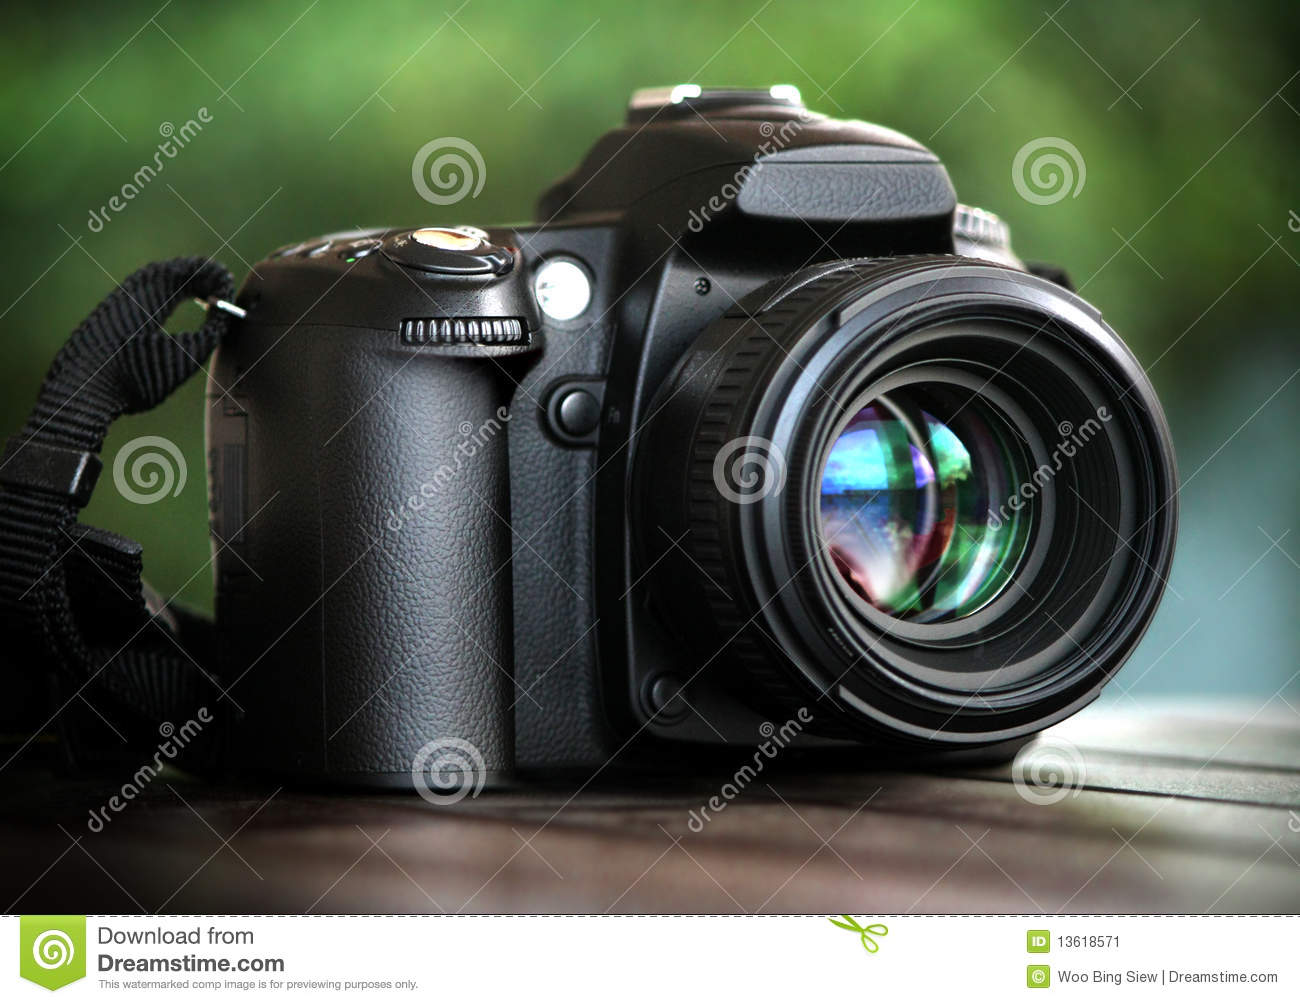 47 Essential Photography Tips for Beginners - BorrowLenses Slr photography tutorials for beginners